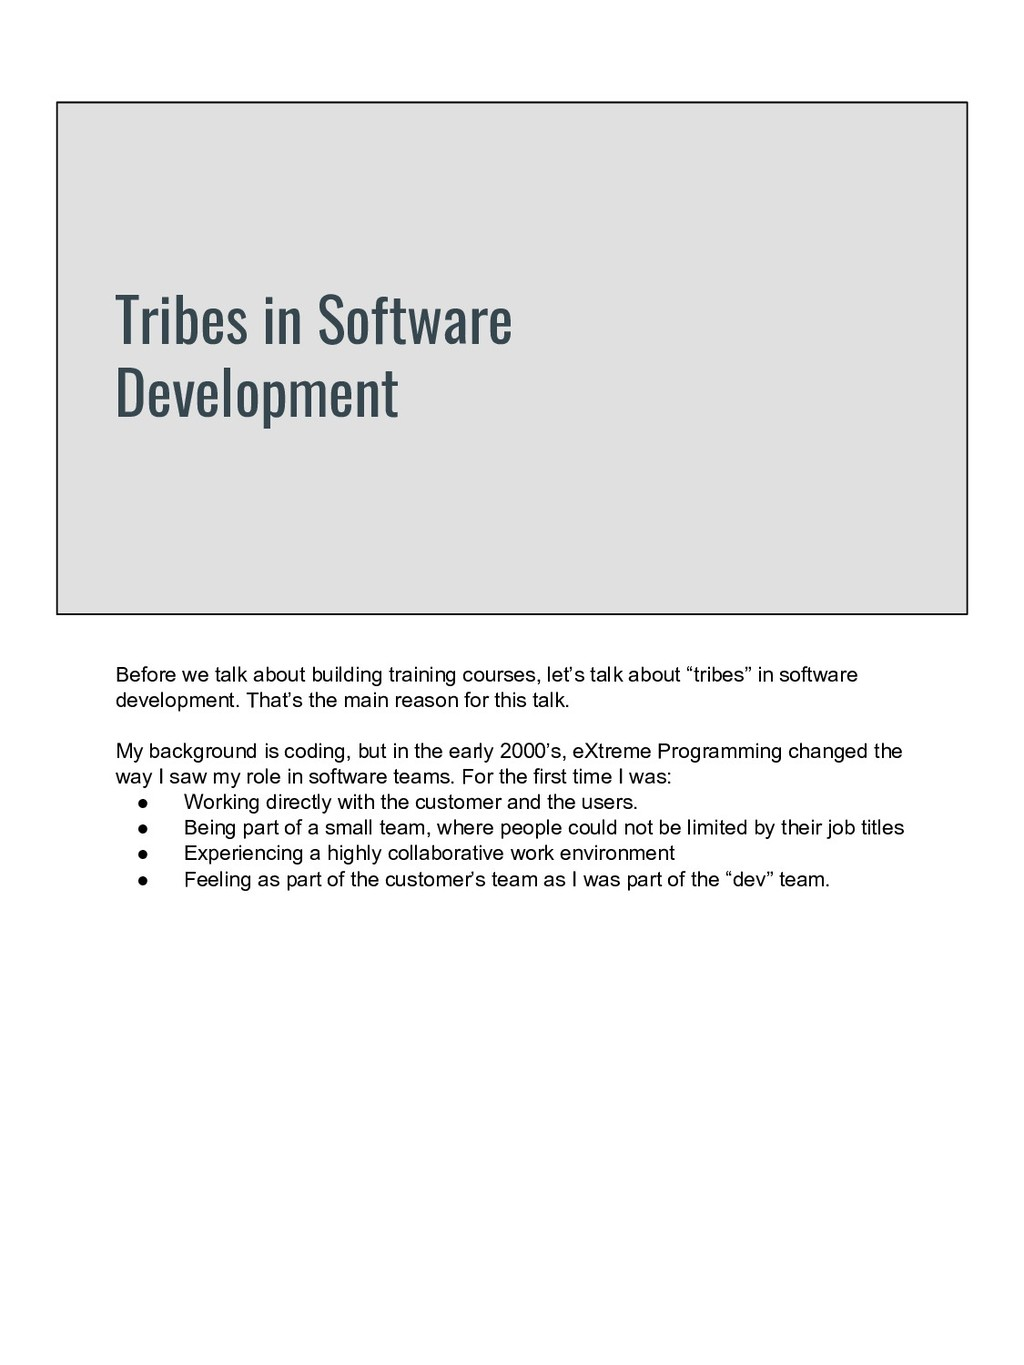 Tribes in Software Development Before we talk a...